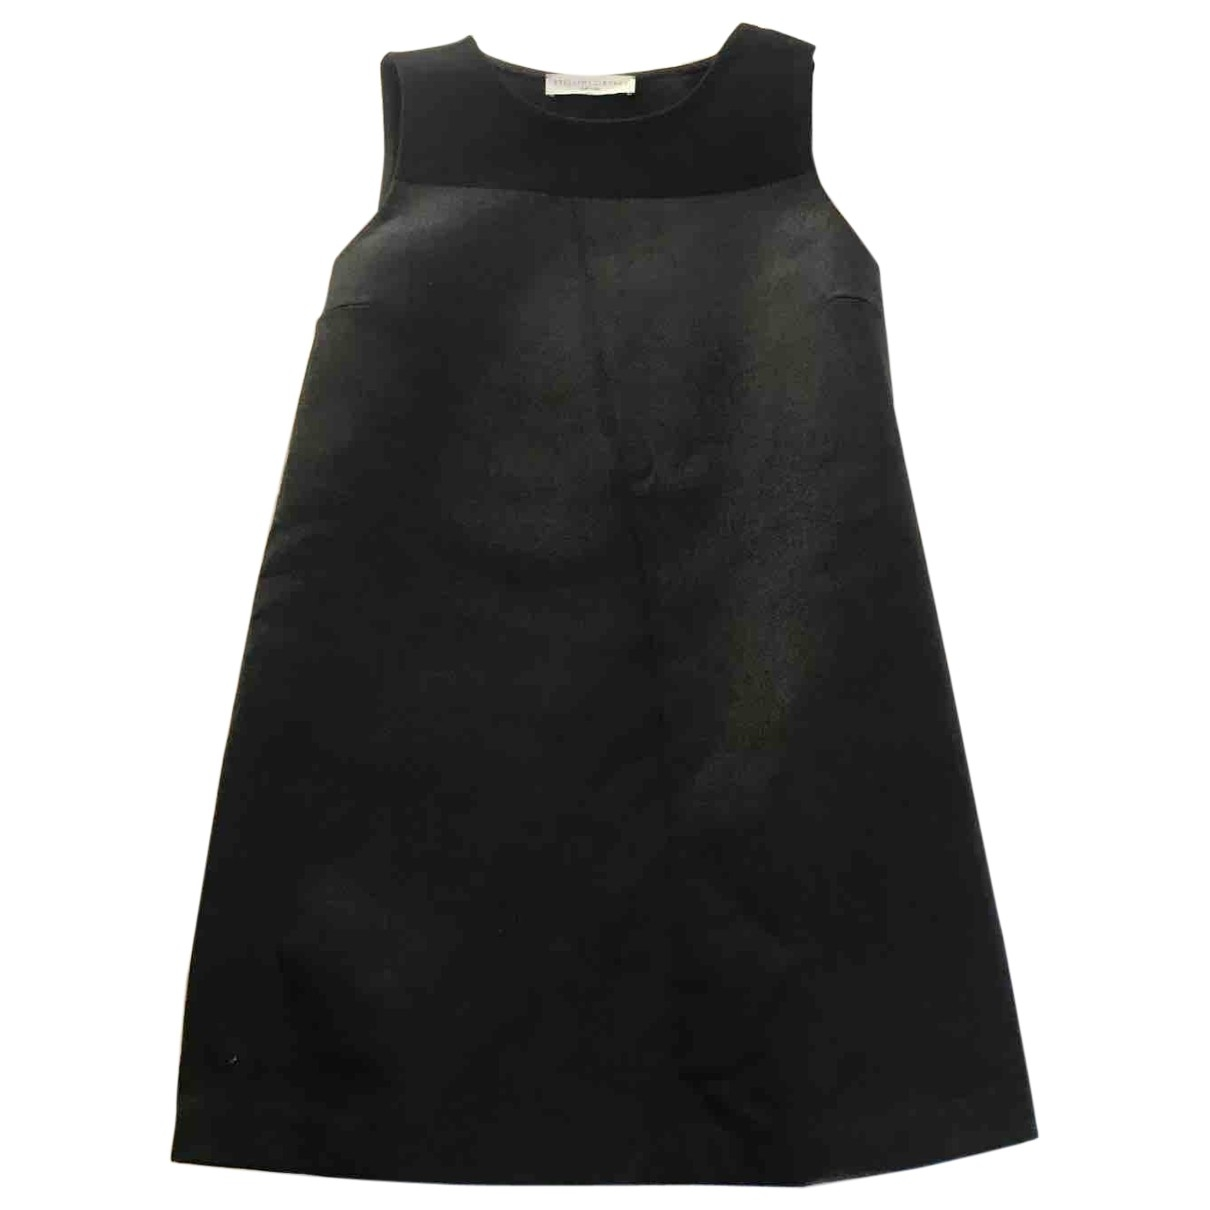 Stella Mccartney \N Black Wool dress for Women 10 UK